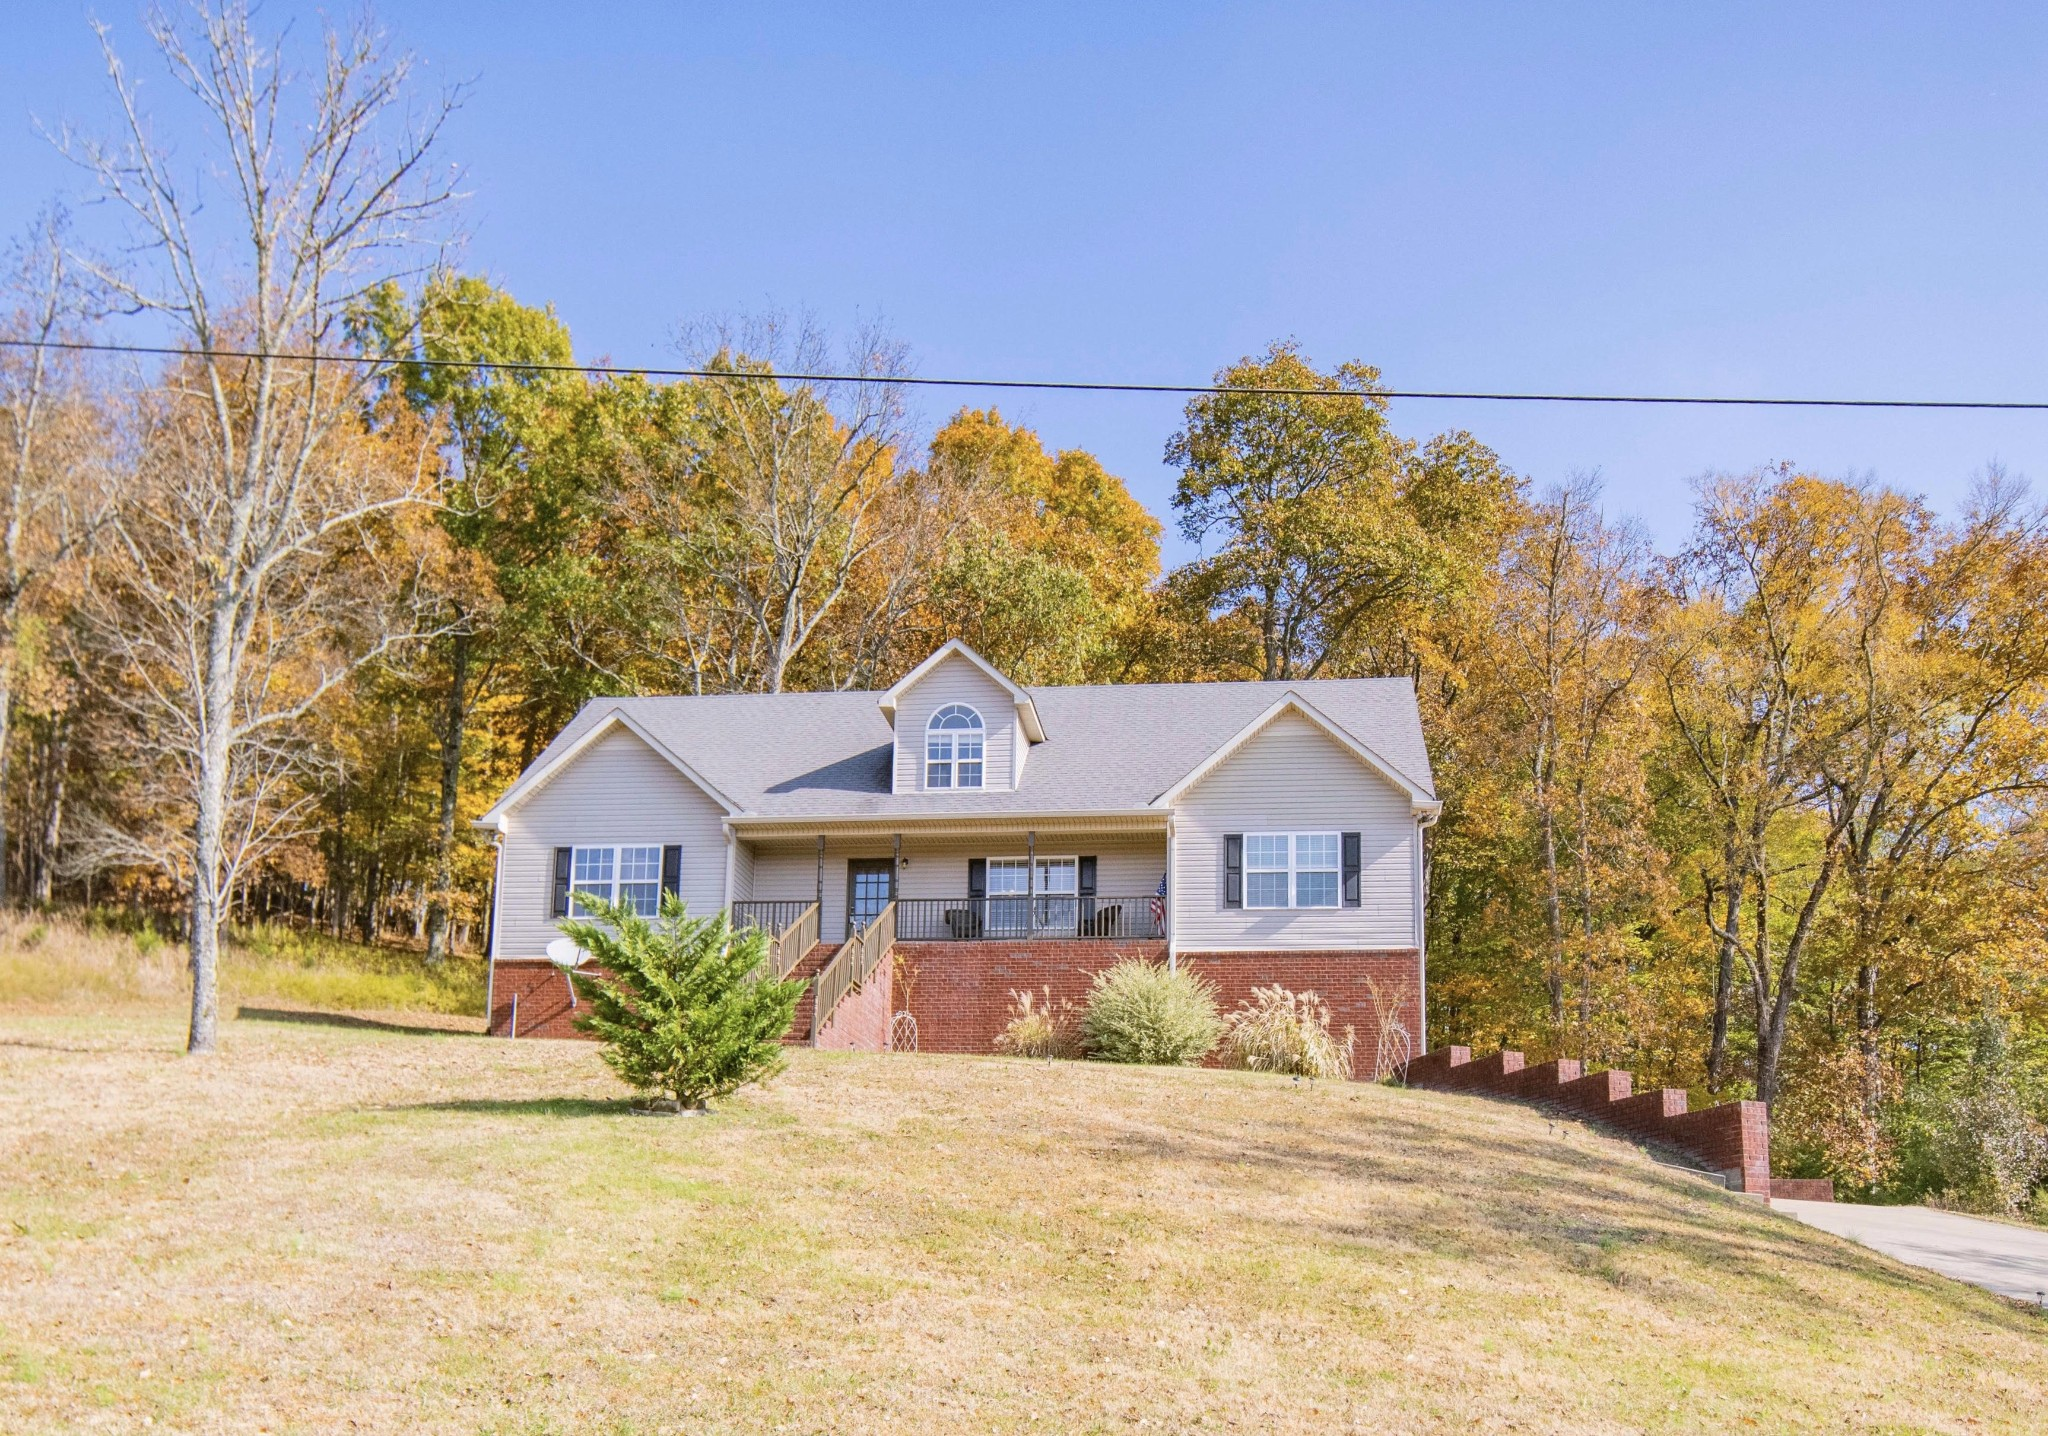 216 Matt Dr, Bell Buckle, TN 37020 - Bell Buckle, TN real estate listing